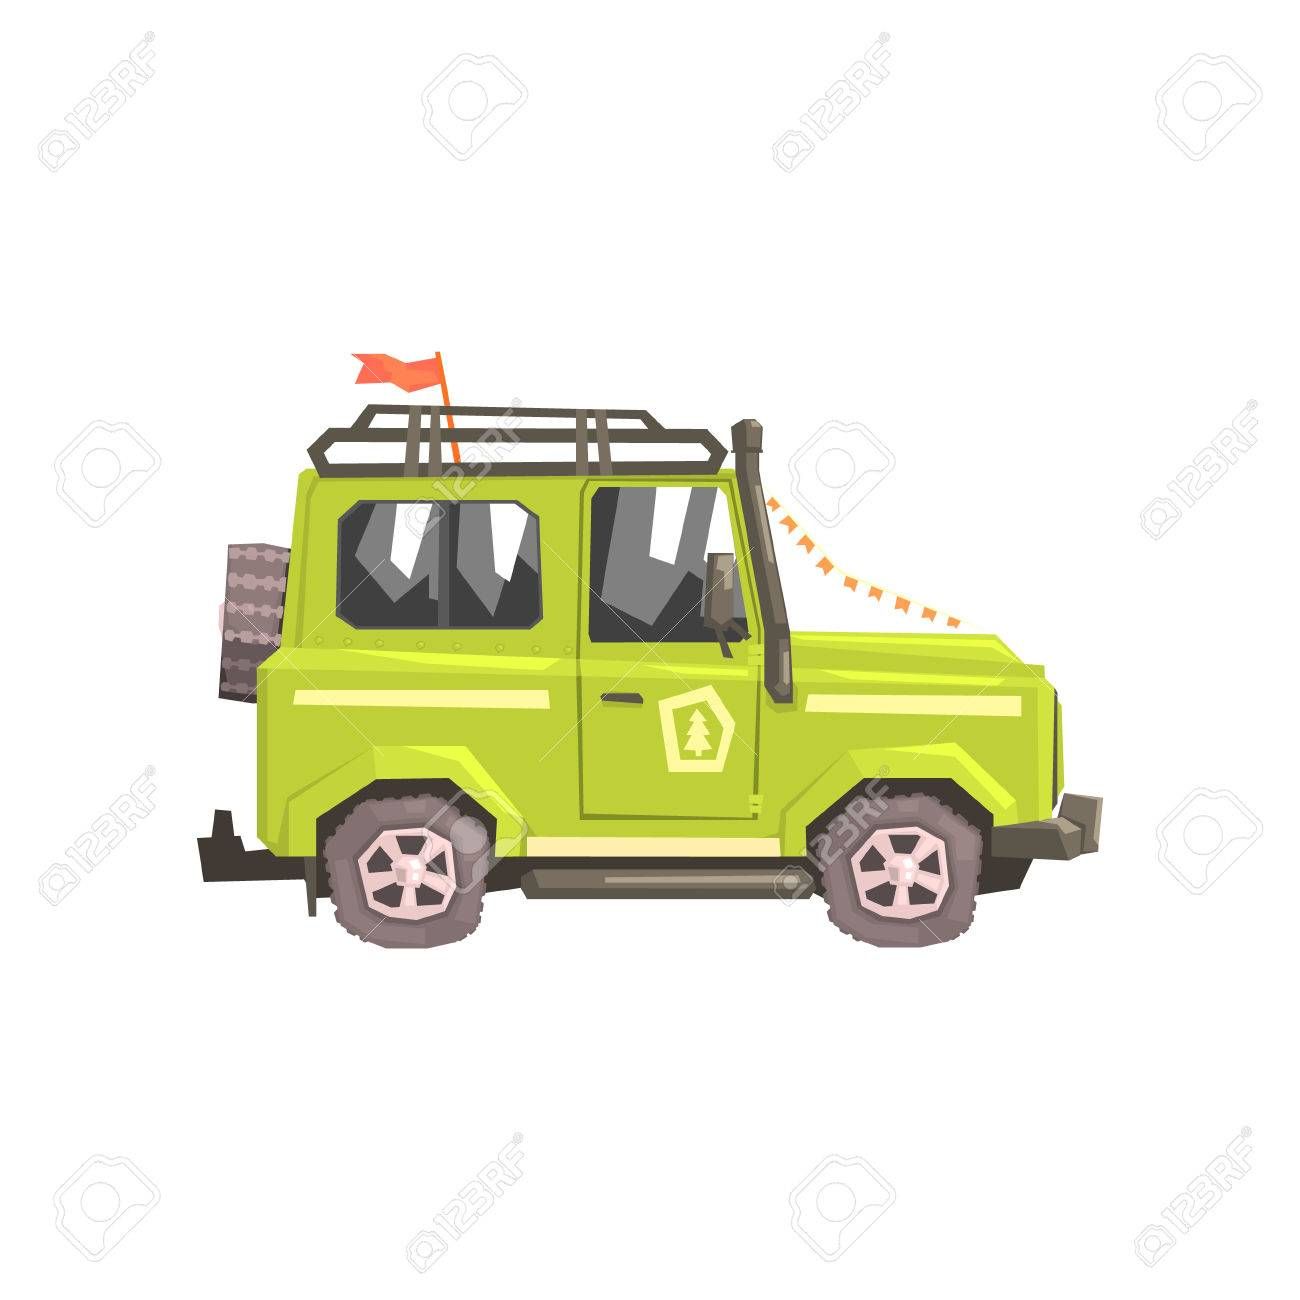 Green suv safari car cool colorful vector illustration in stylized geometric cartoon design on white